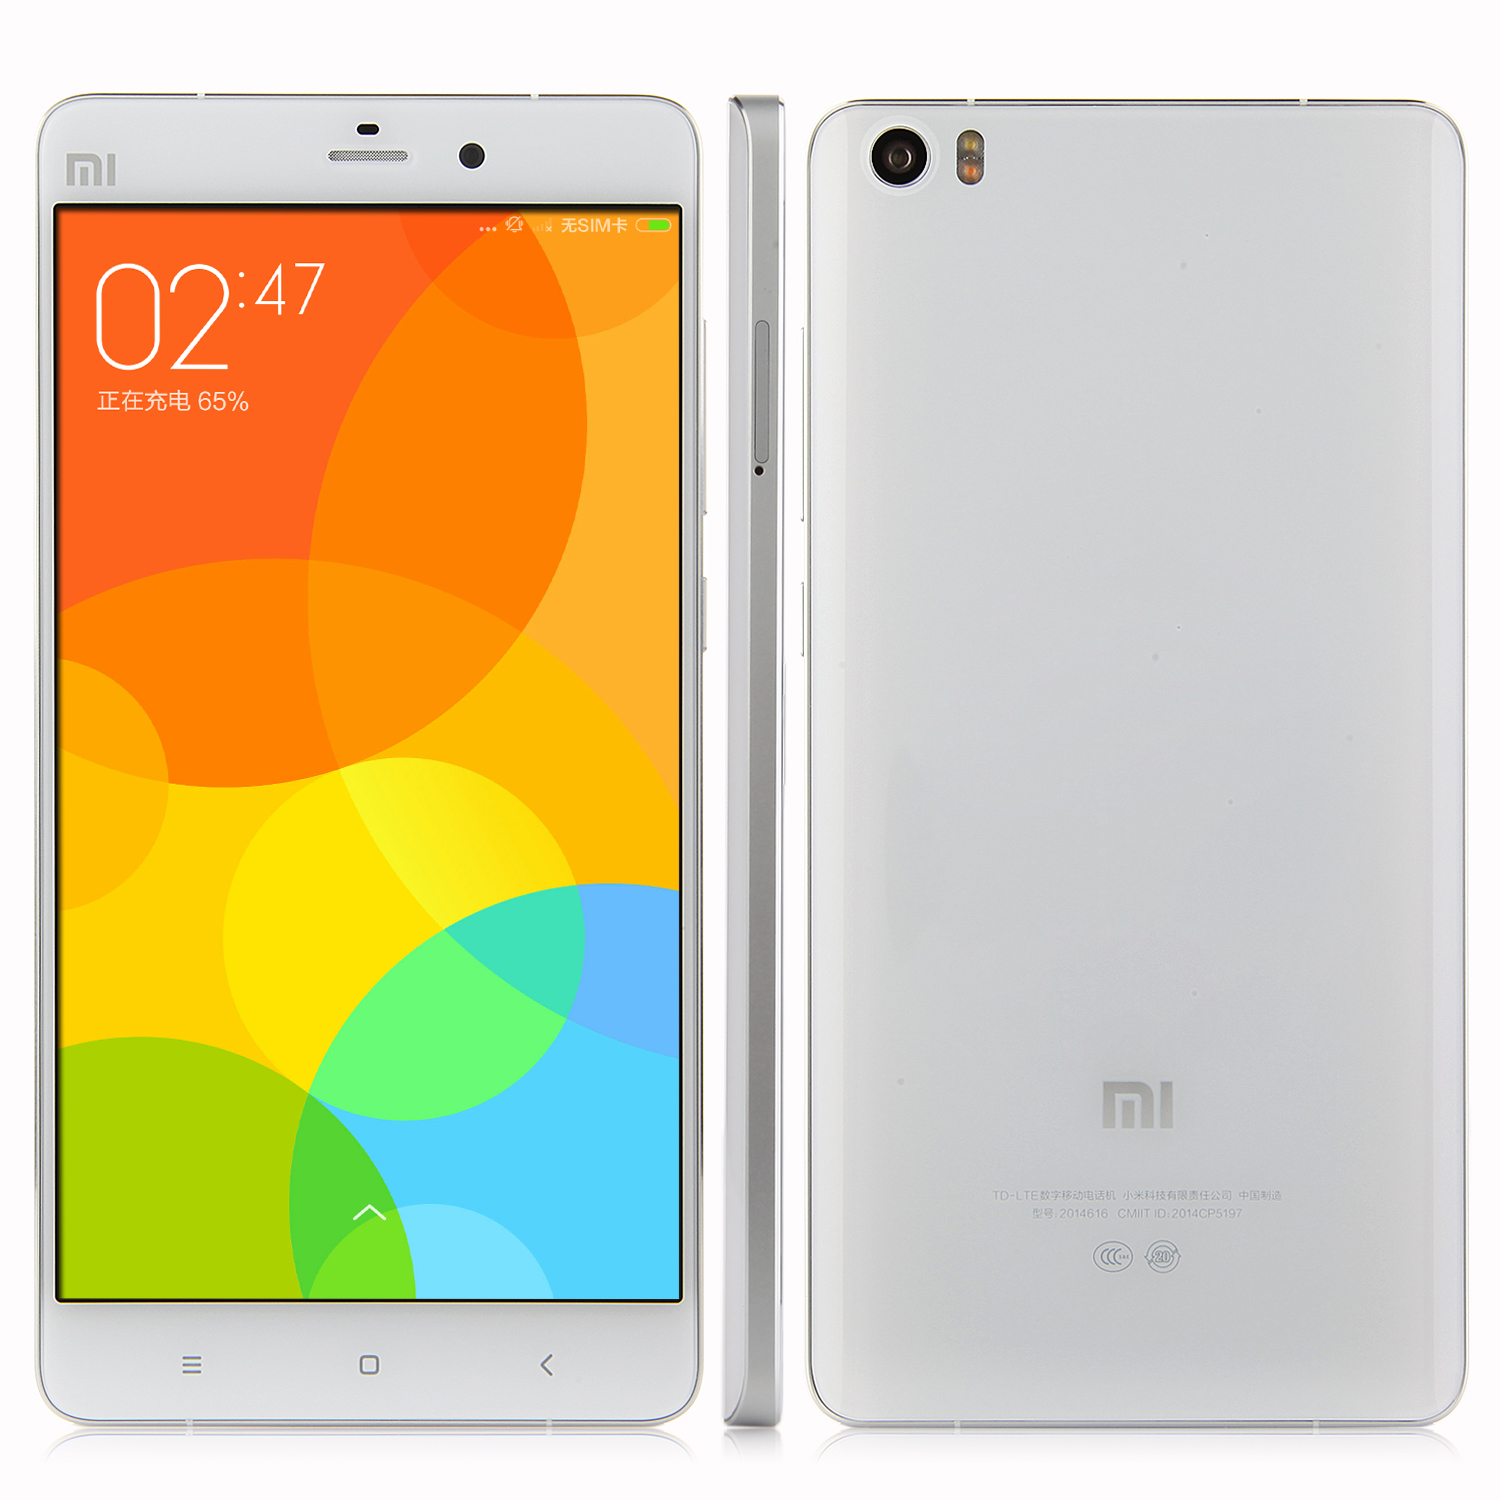 XIAOMI MI Note 4G LTE Snapdragon 801 Quad Core 2.5GHz 3GB 64GB 5.7 Inch 13.0MP White